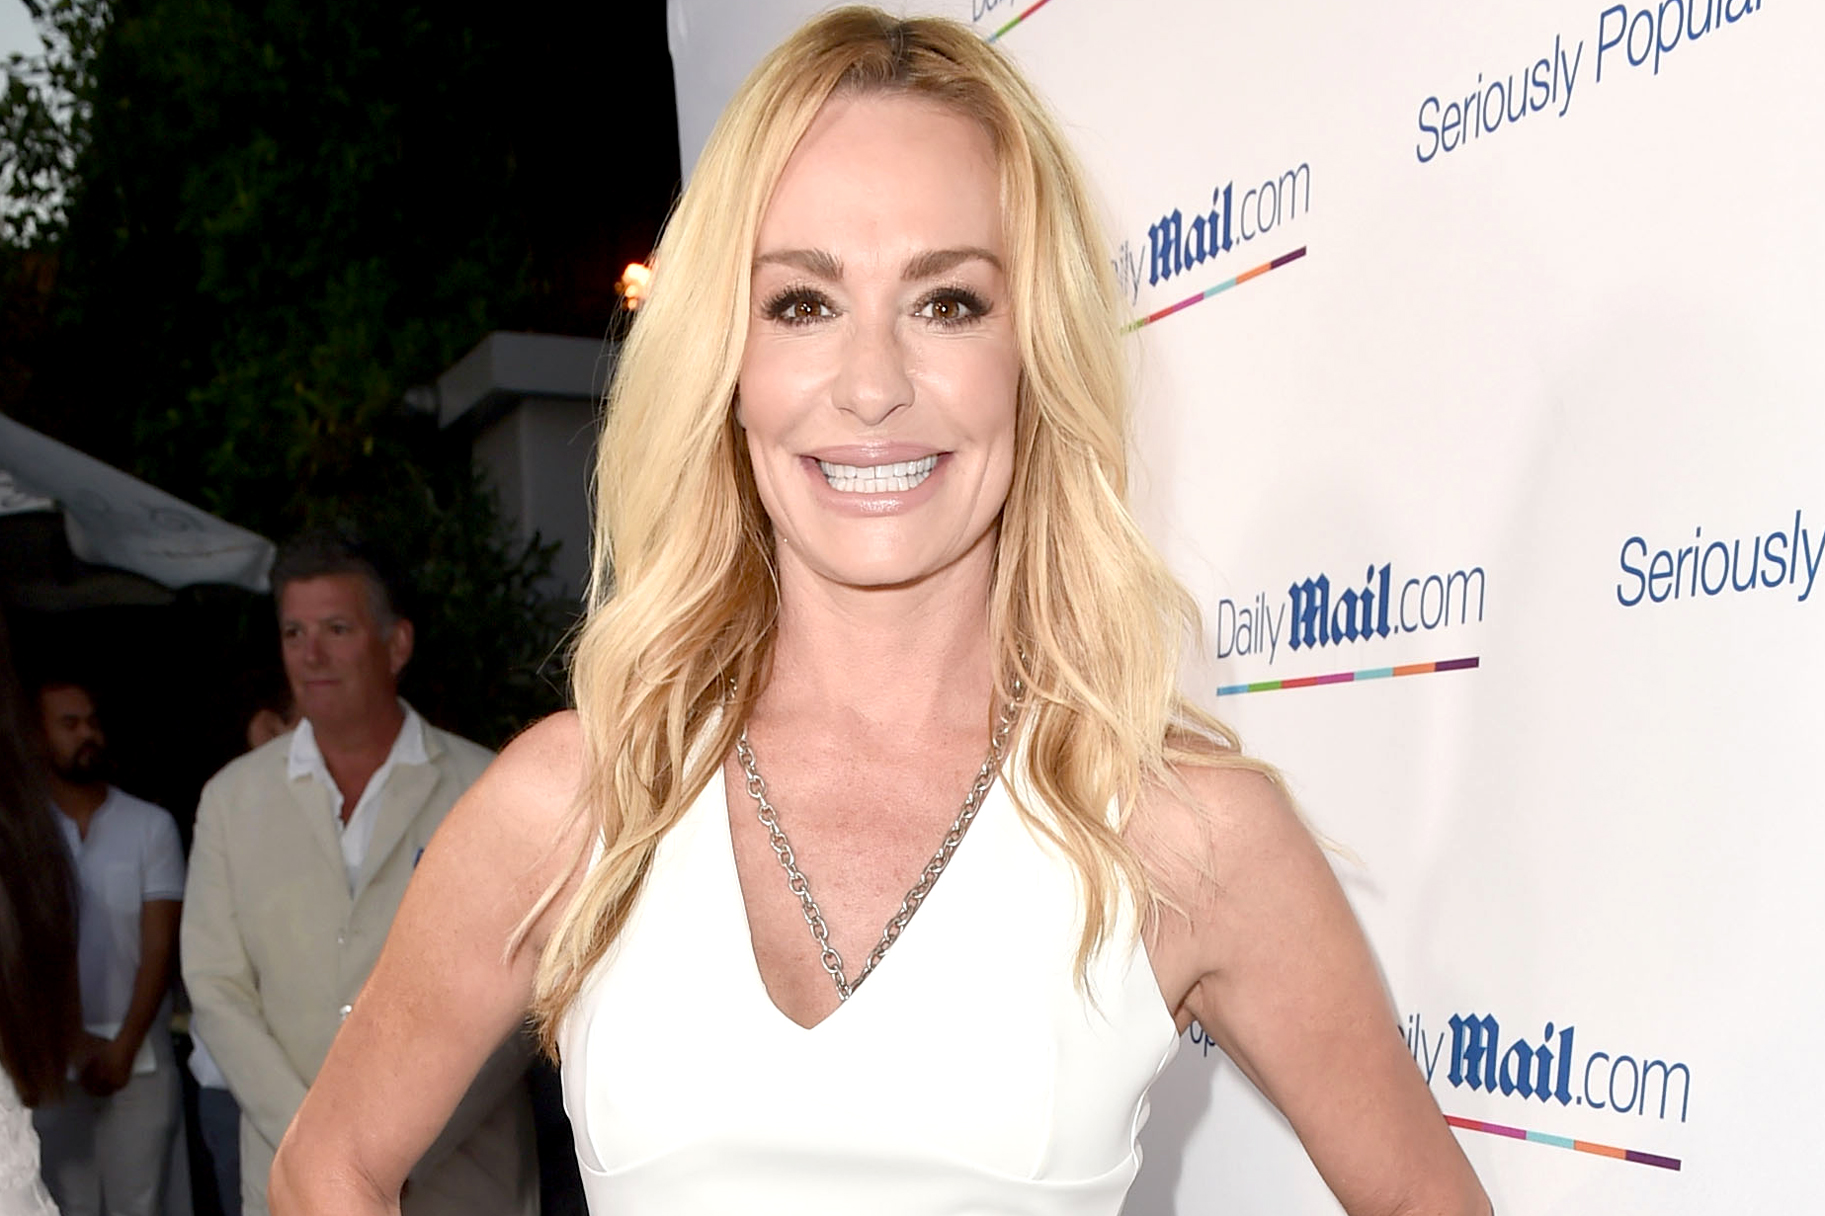 Taylor Armstrong Post Rhobh Update